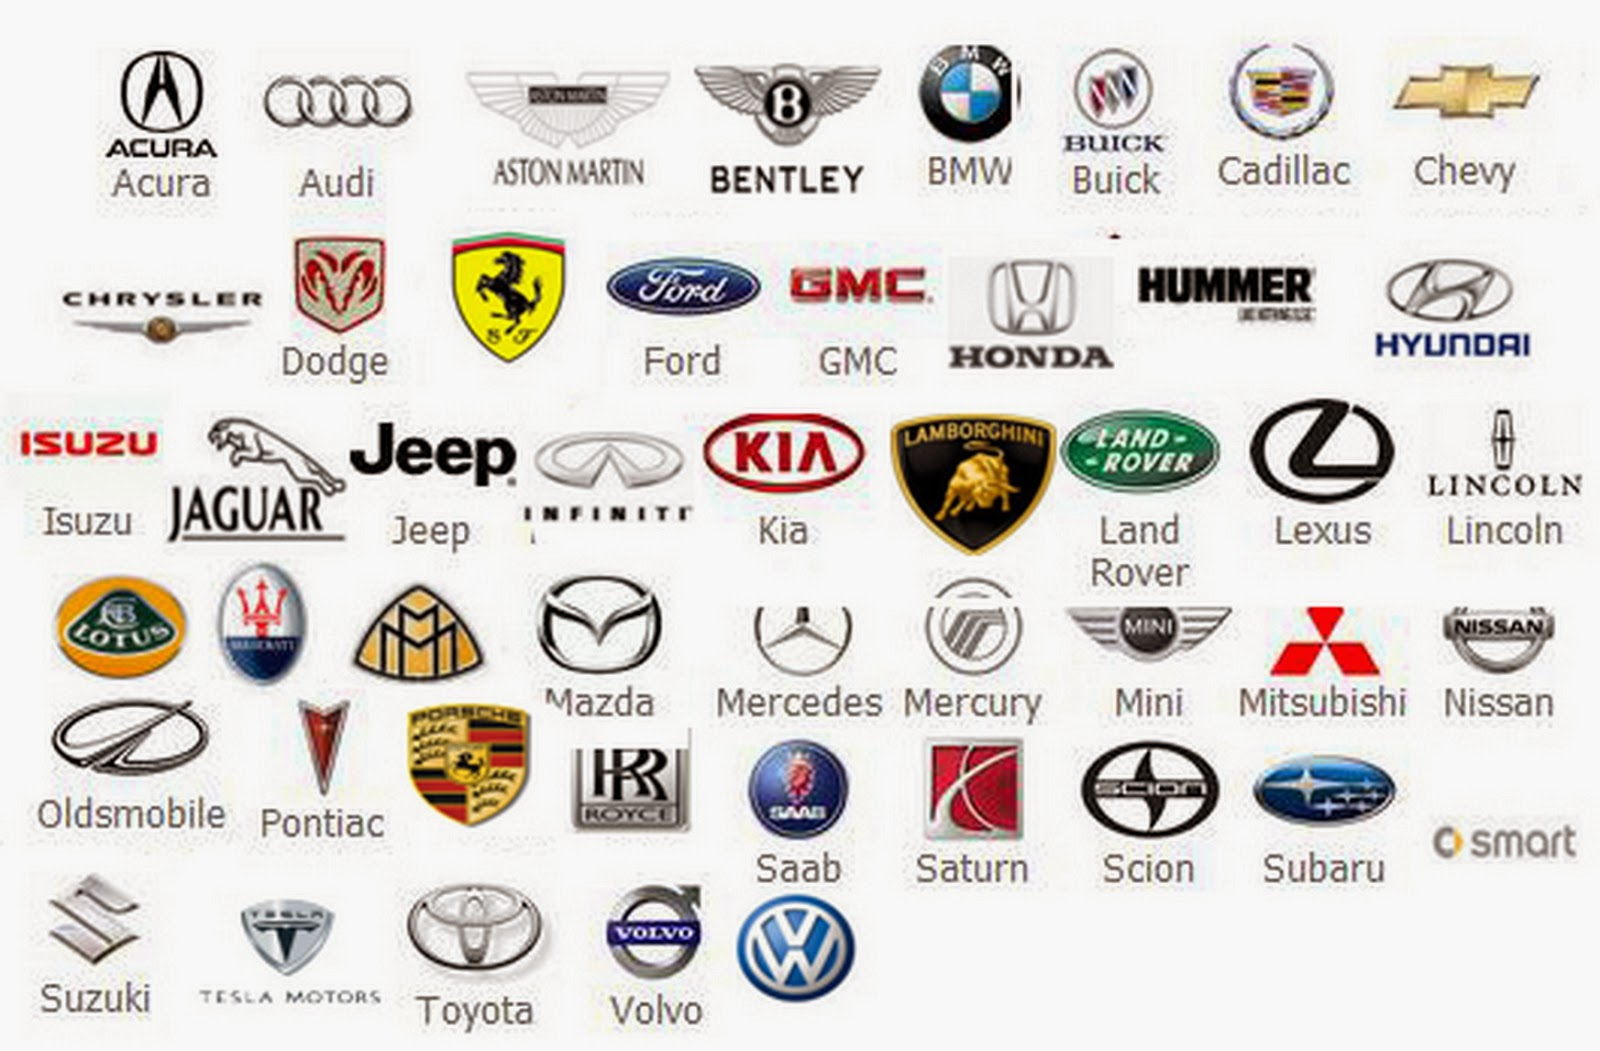 Car Symbols With Name >> Car Brands Logo Quiz | www.pixshark.com - Images Galleries With A Bite!